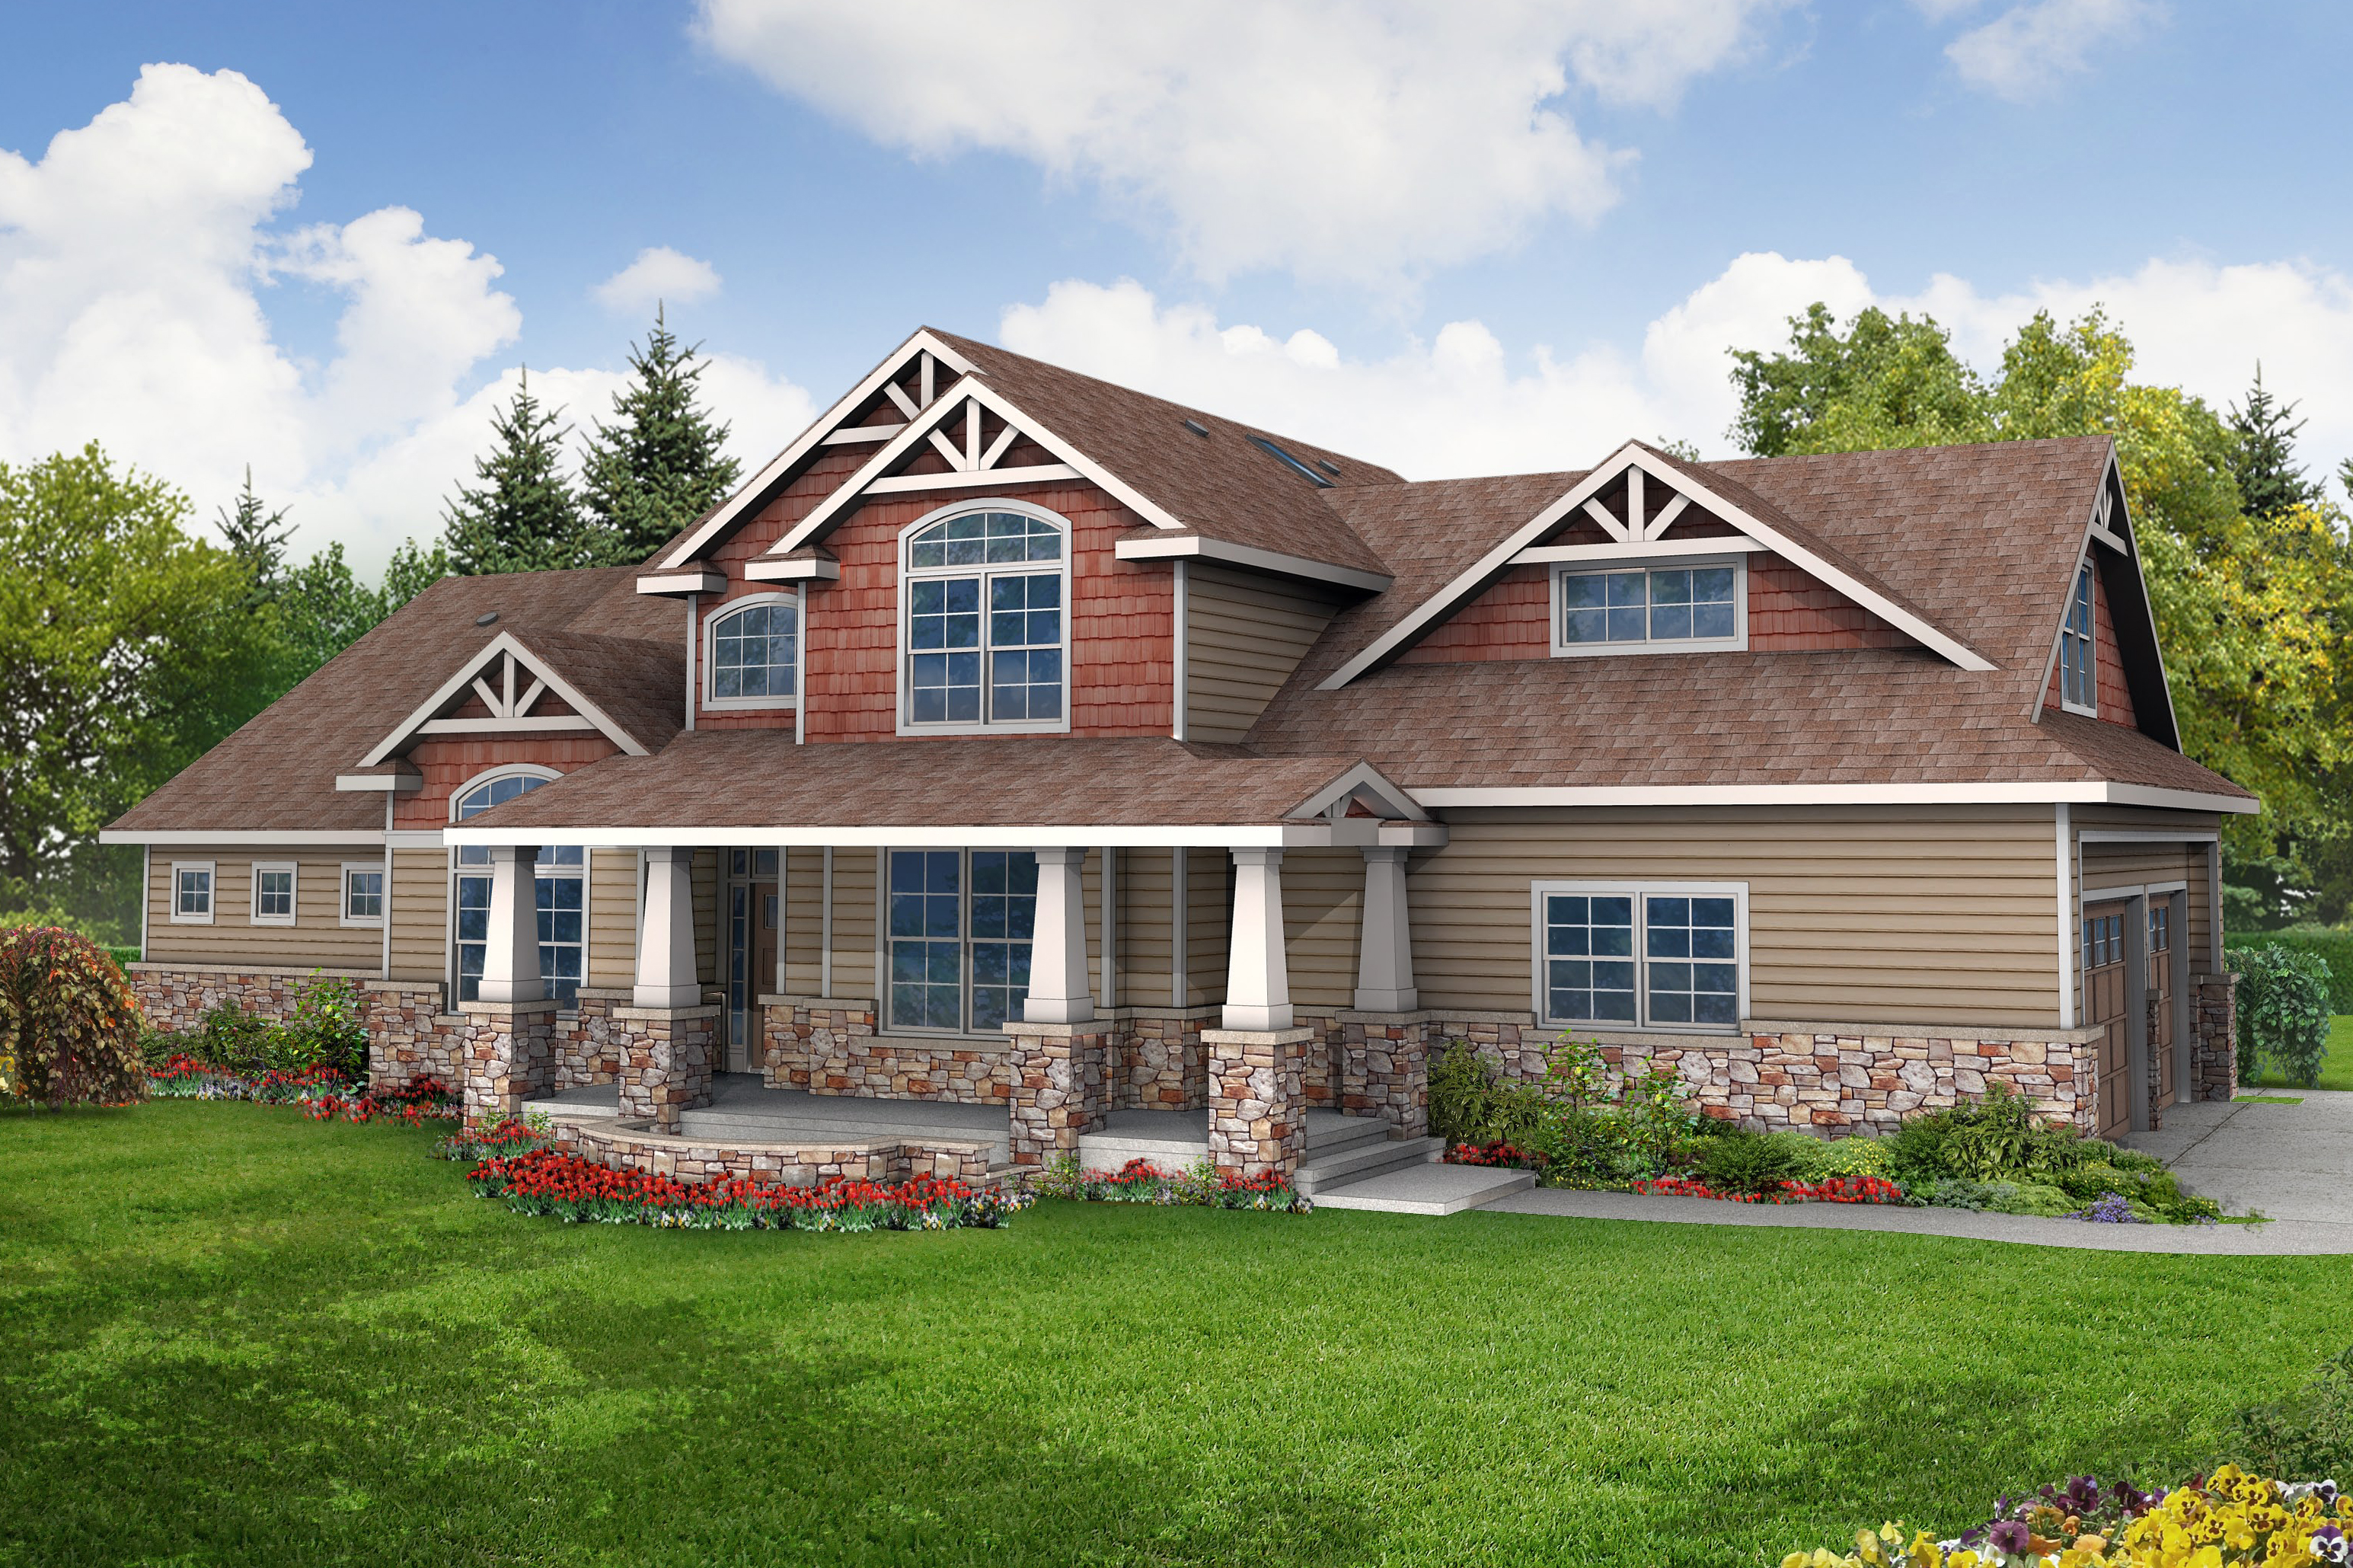 Craftsman House Plans Craftsman Home Plans Craftsman Style House